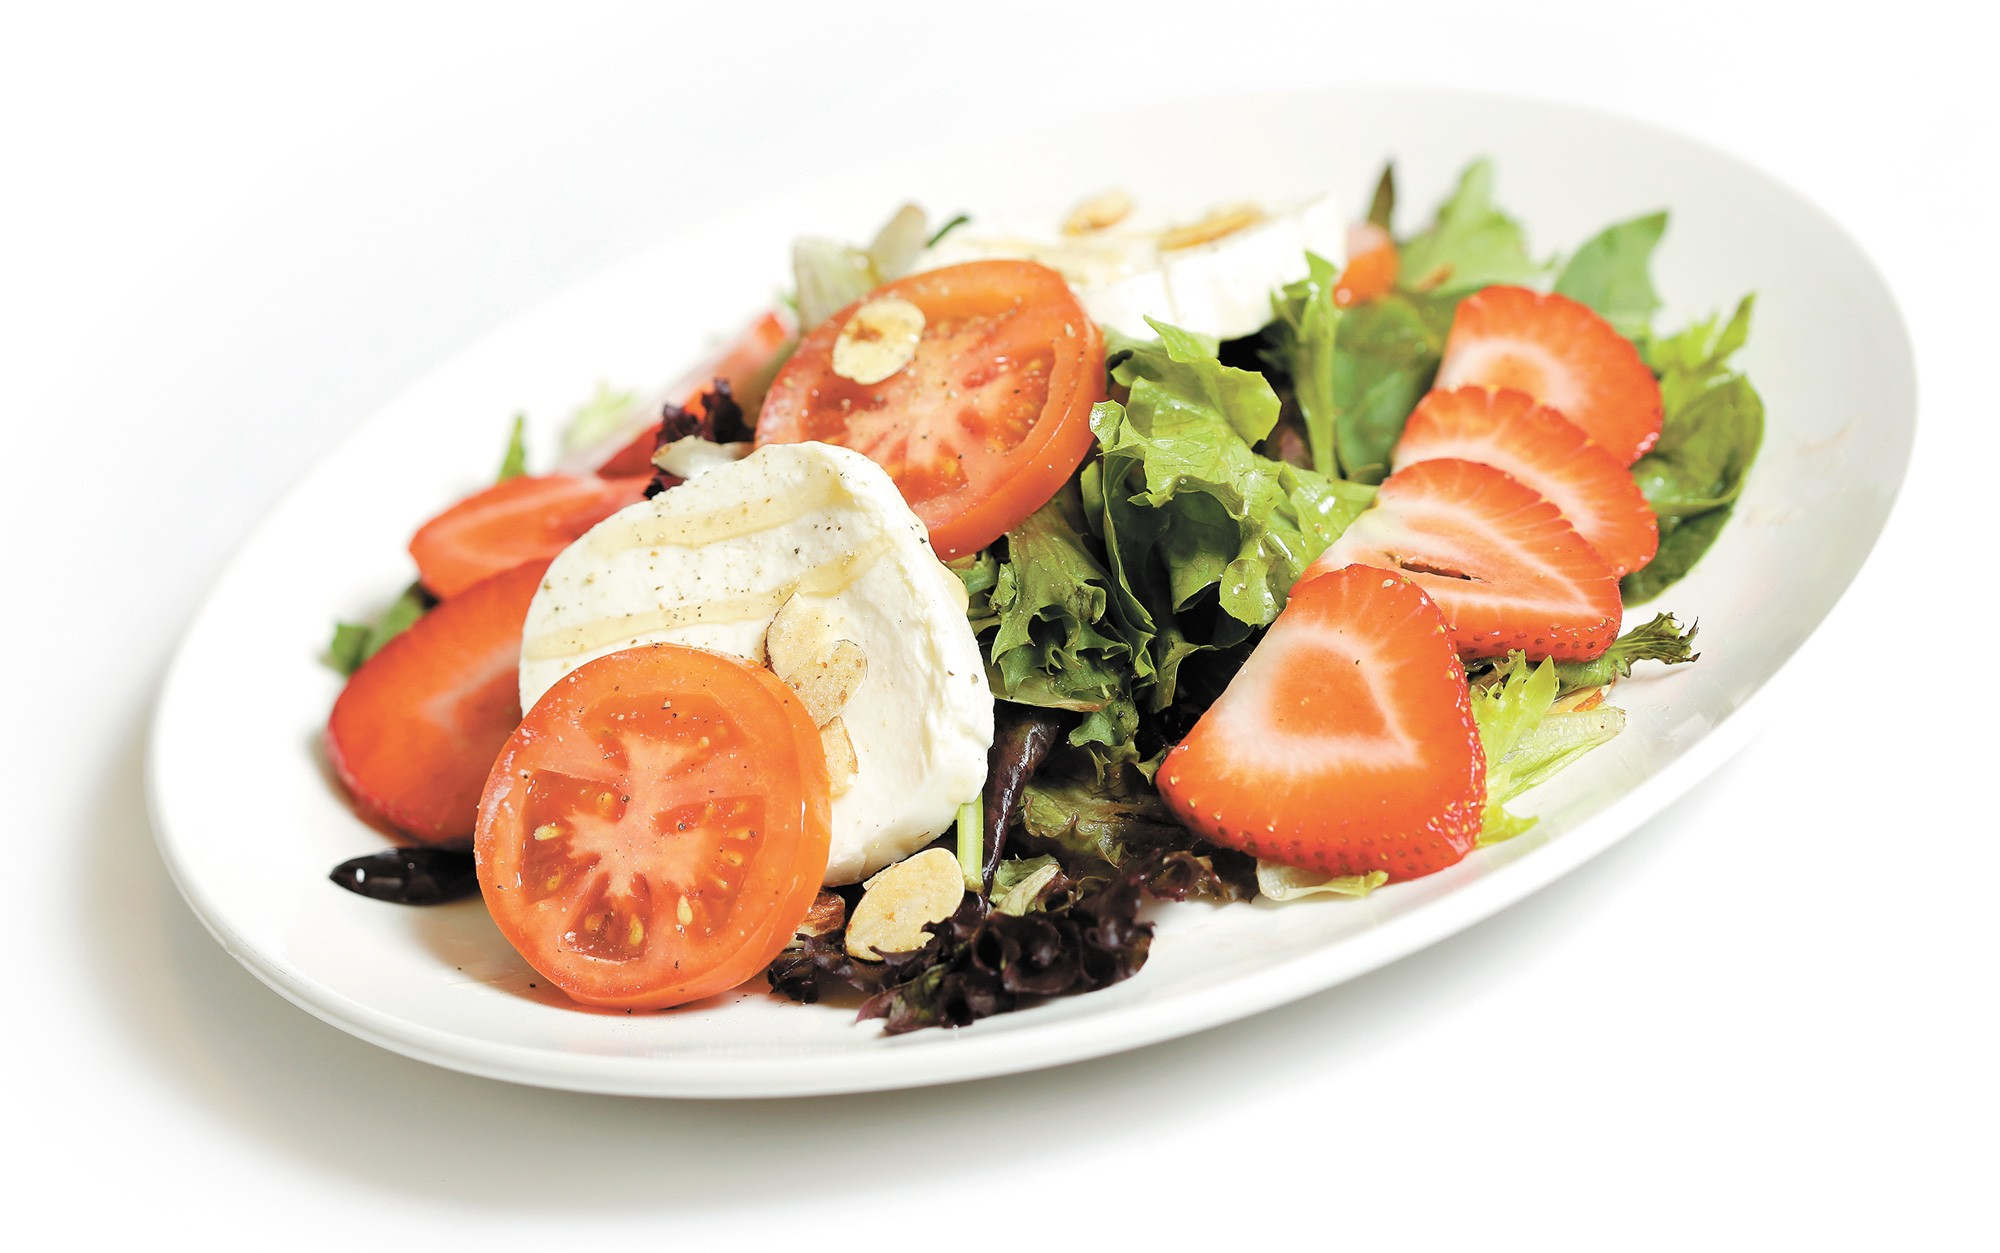 Strawberry caprese salad from The Melting Pot